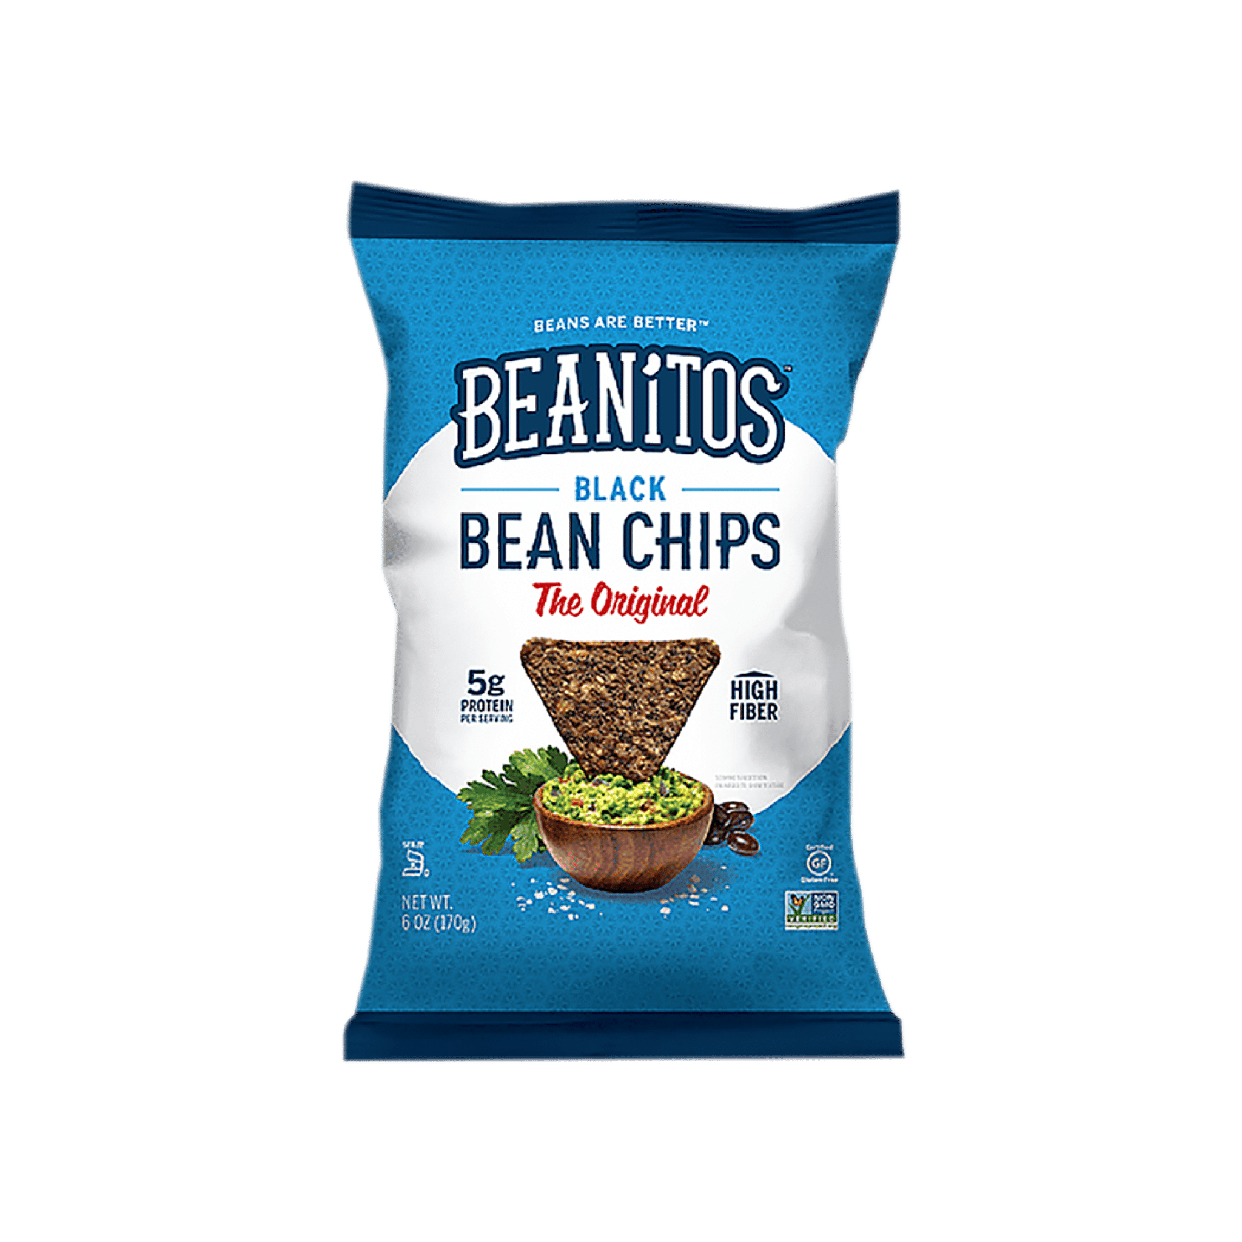 beanitos black bean